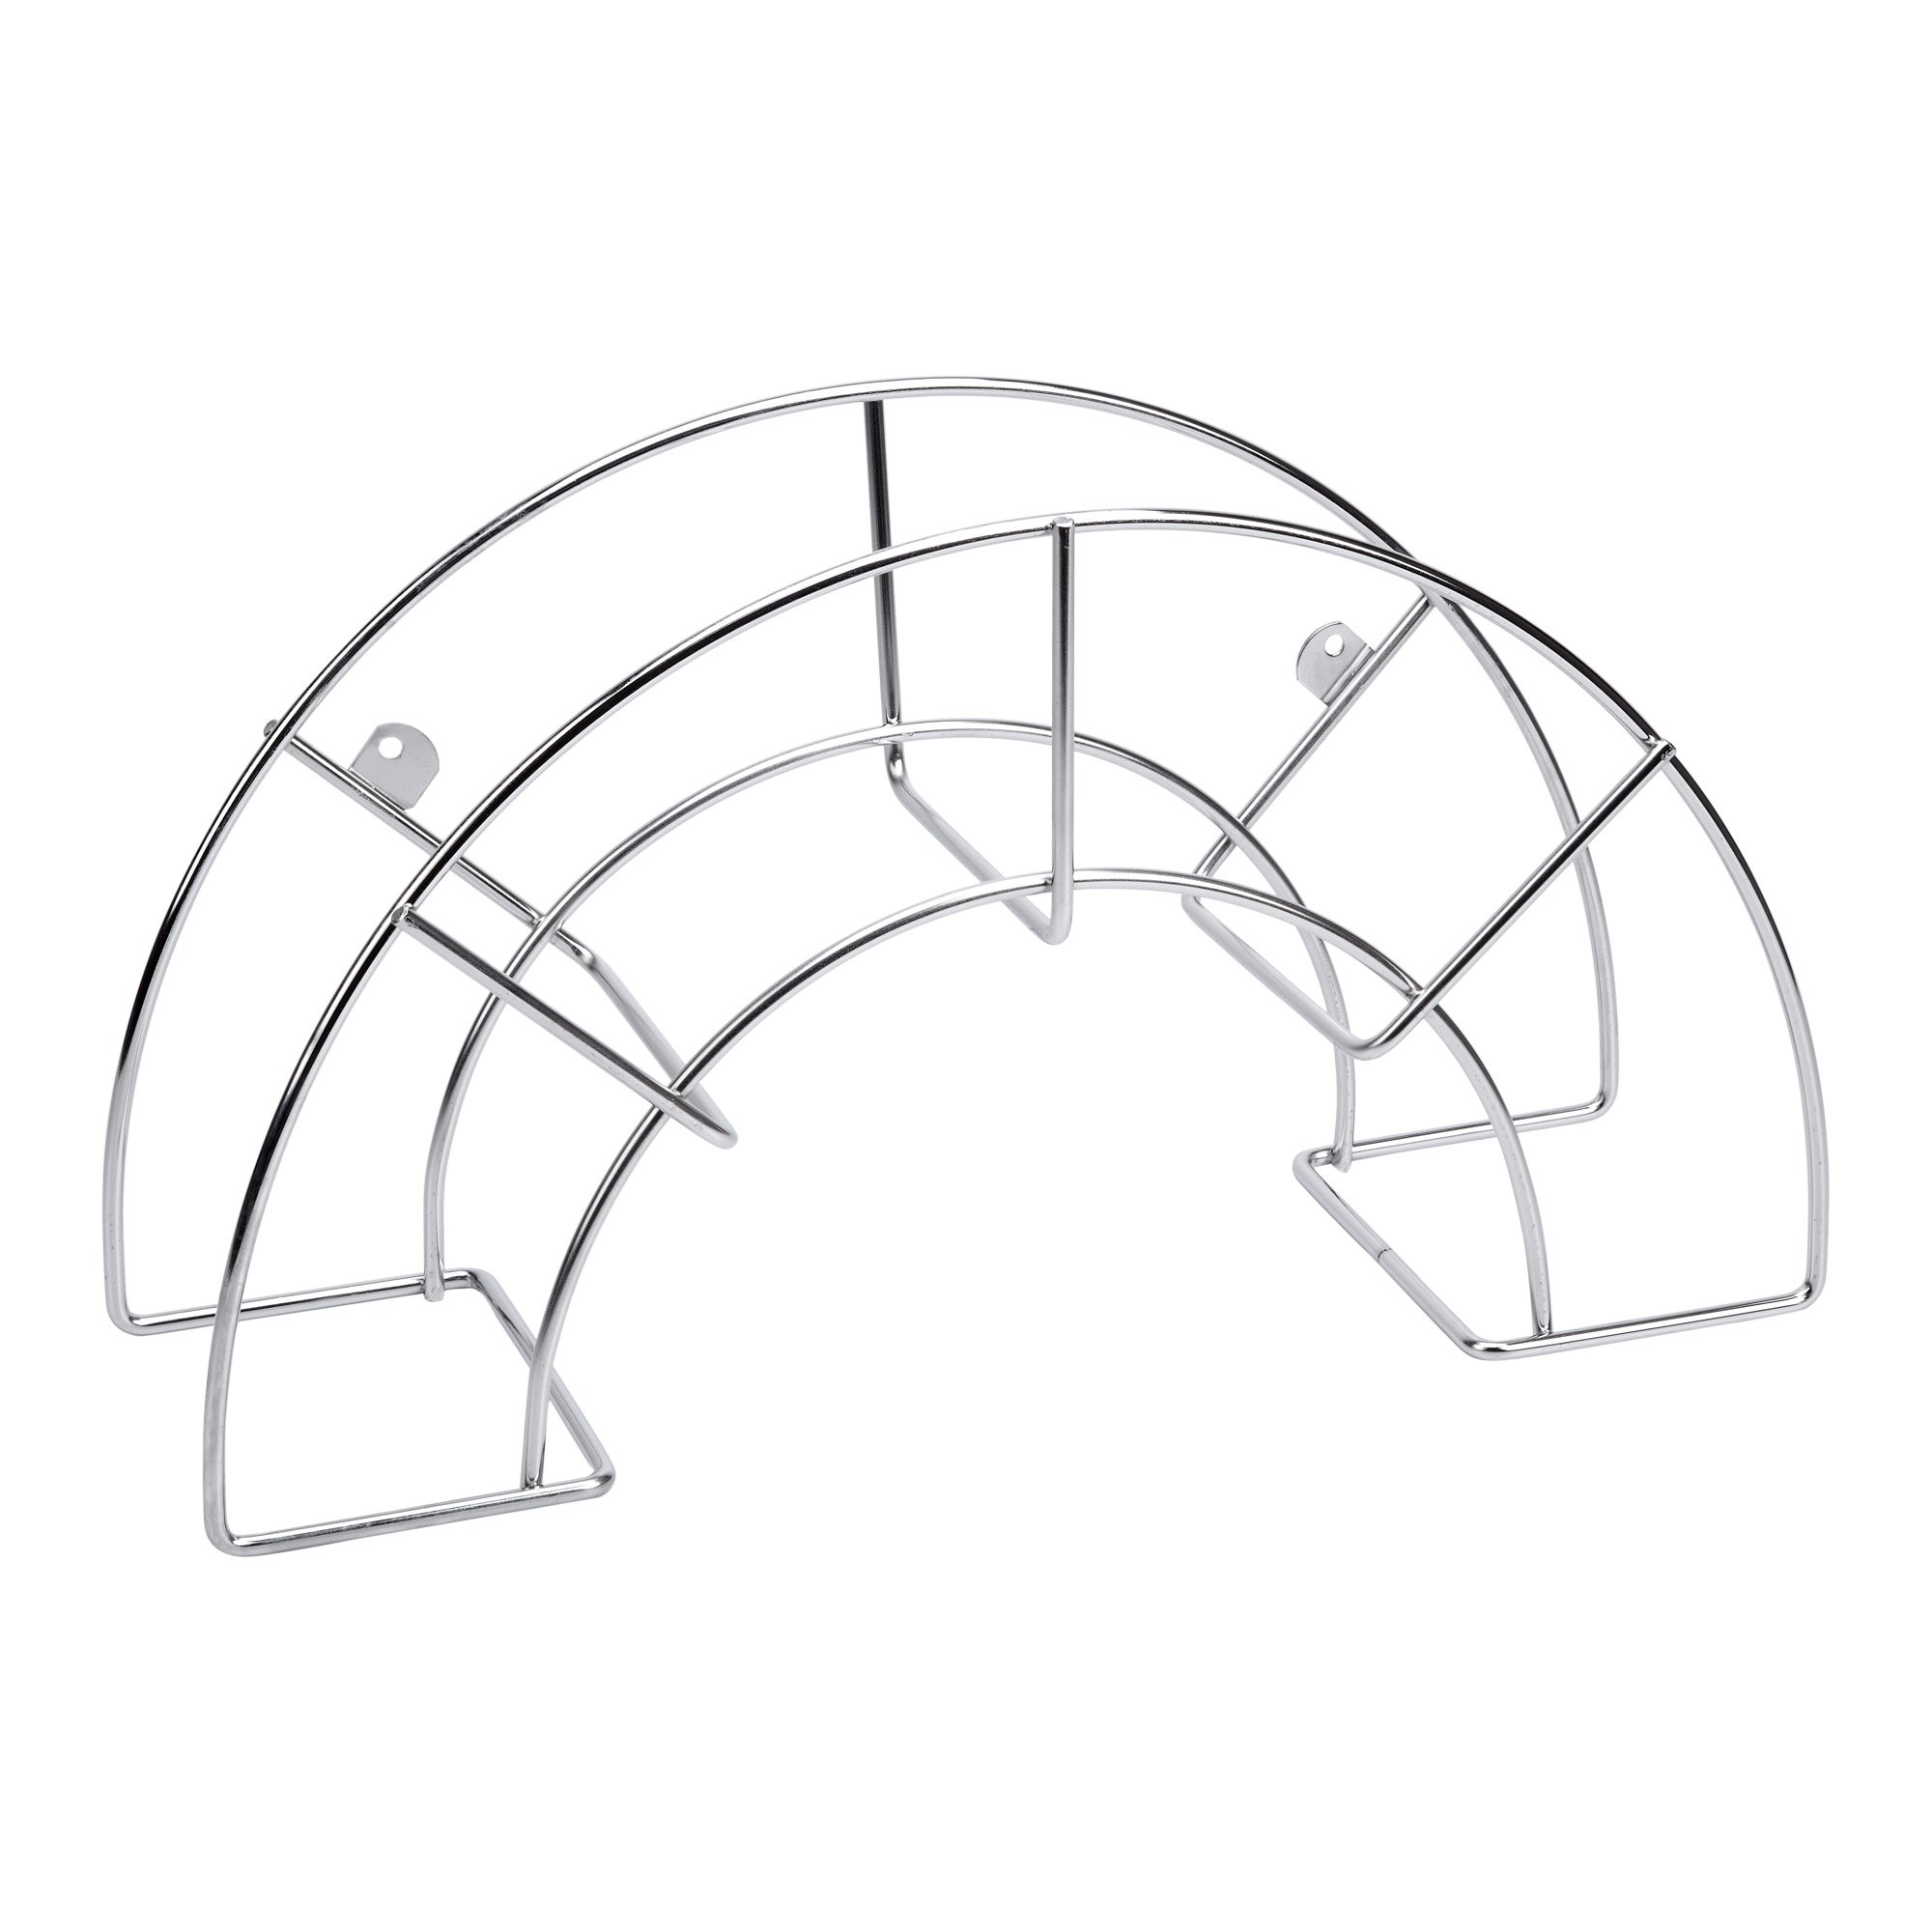 SAUVIC 3303 Large 304 Wall Hose Stand, Stainless Steel